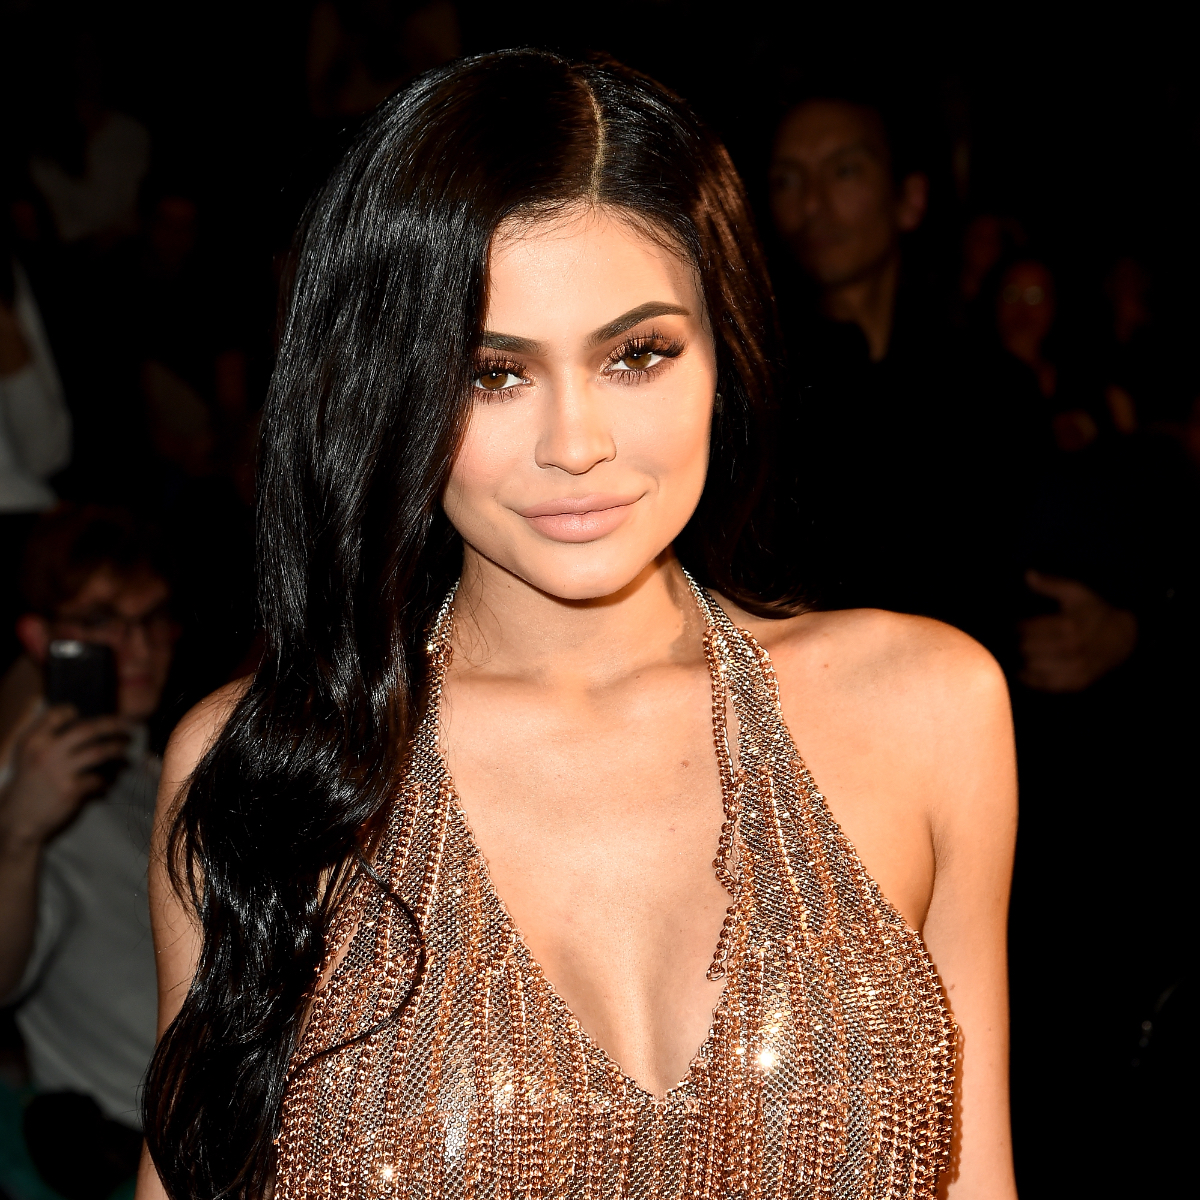 Kylie Jenner Steals The Show With Her Cameo In Cardi B And Megan